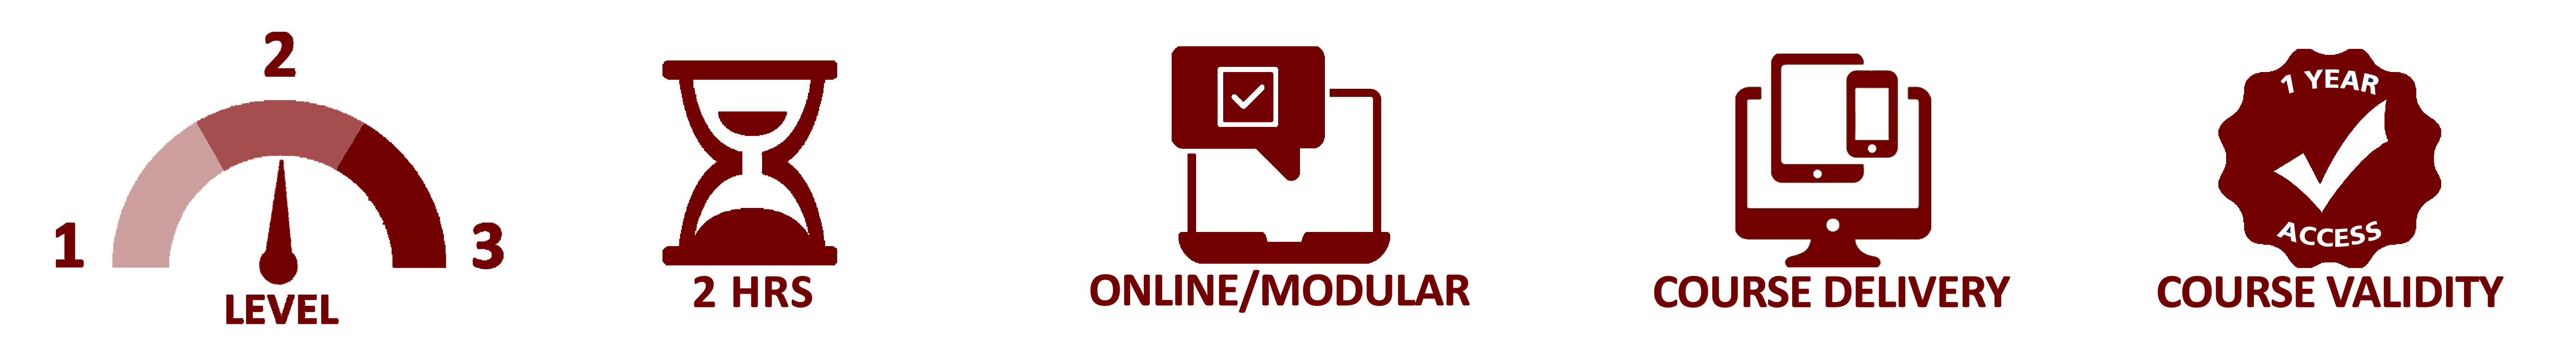 The Mental Capacity Act - Online Learning Courses - E-Learning Courses - Mandatory Compliance UK -